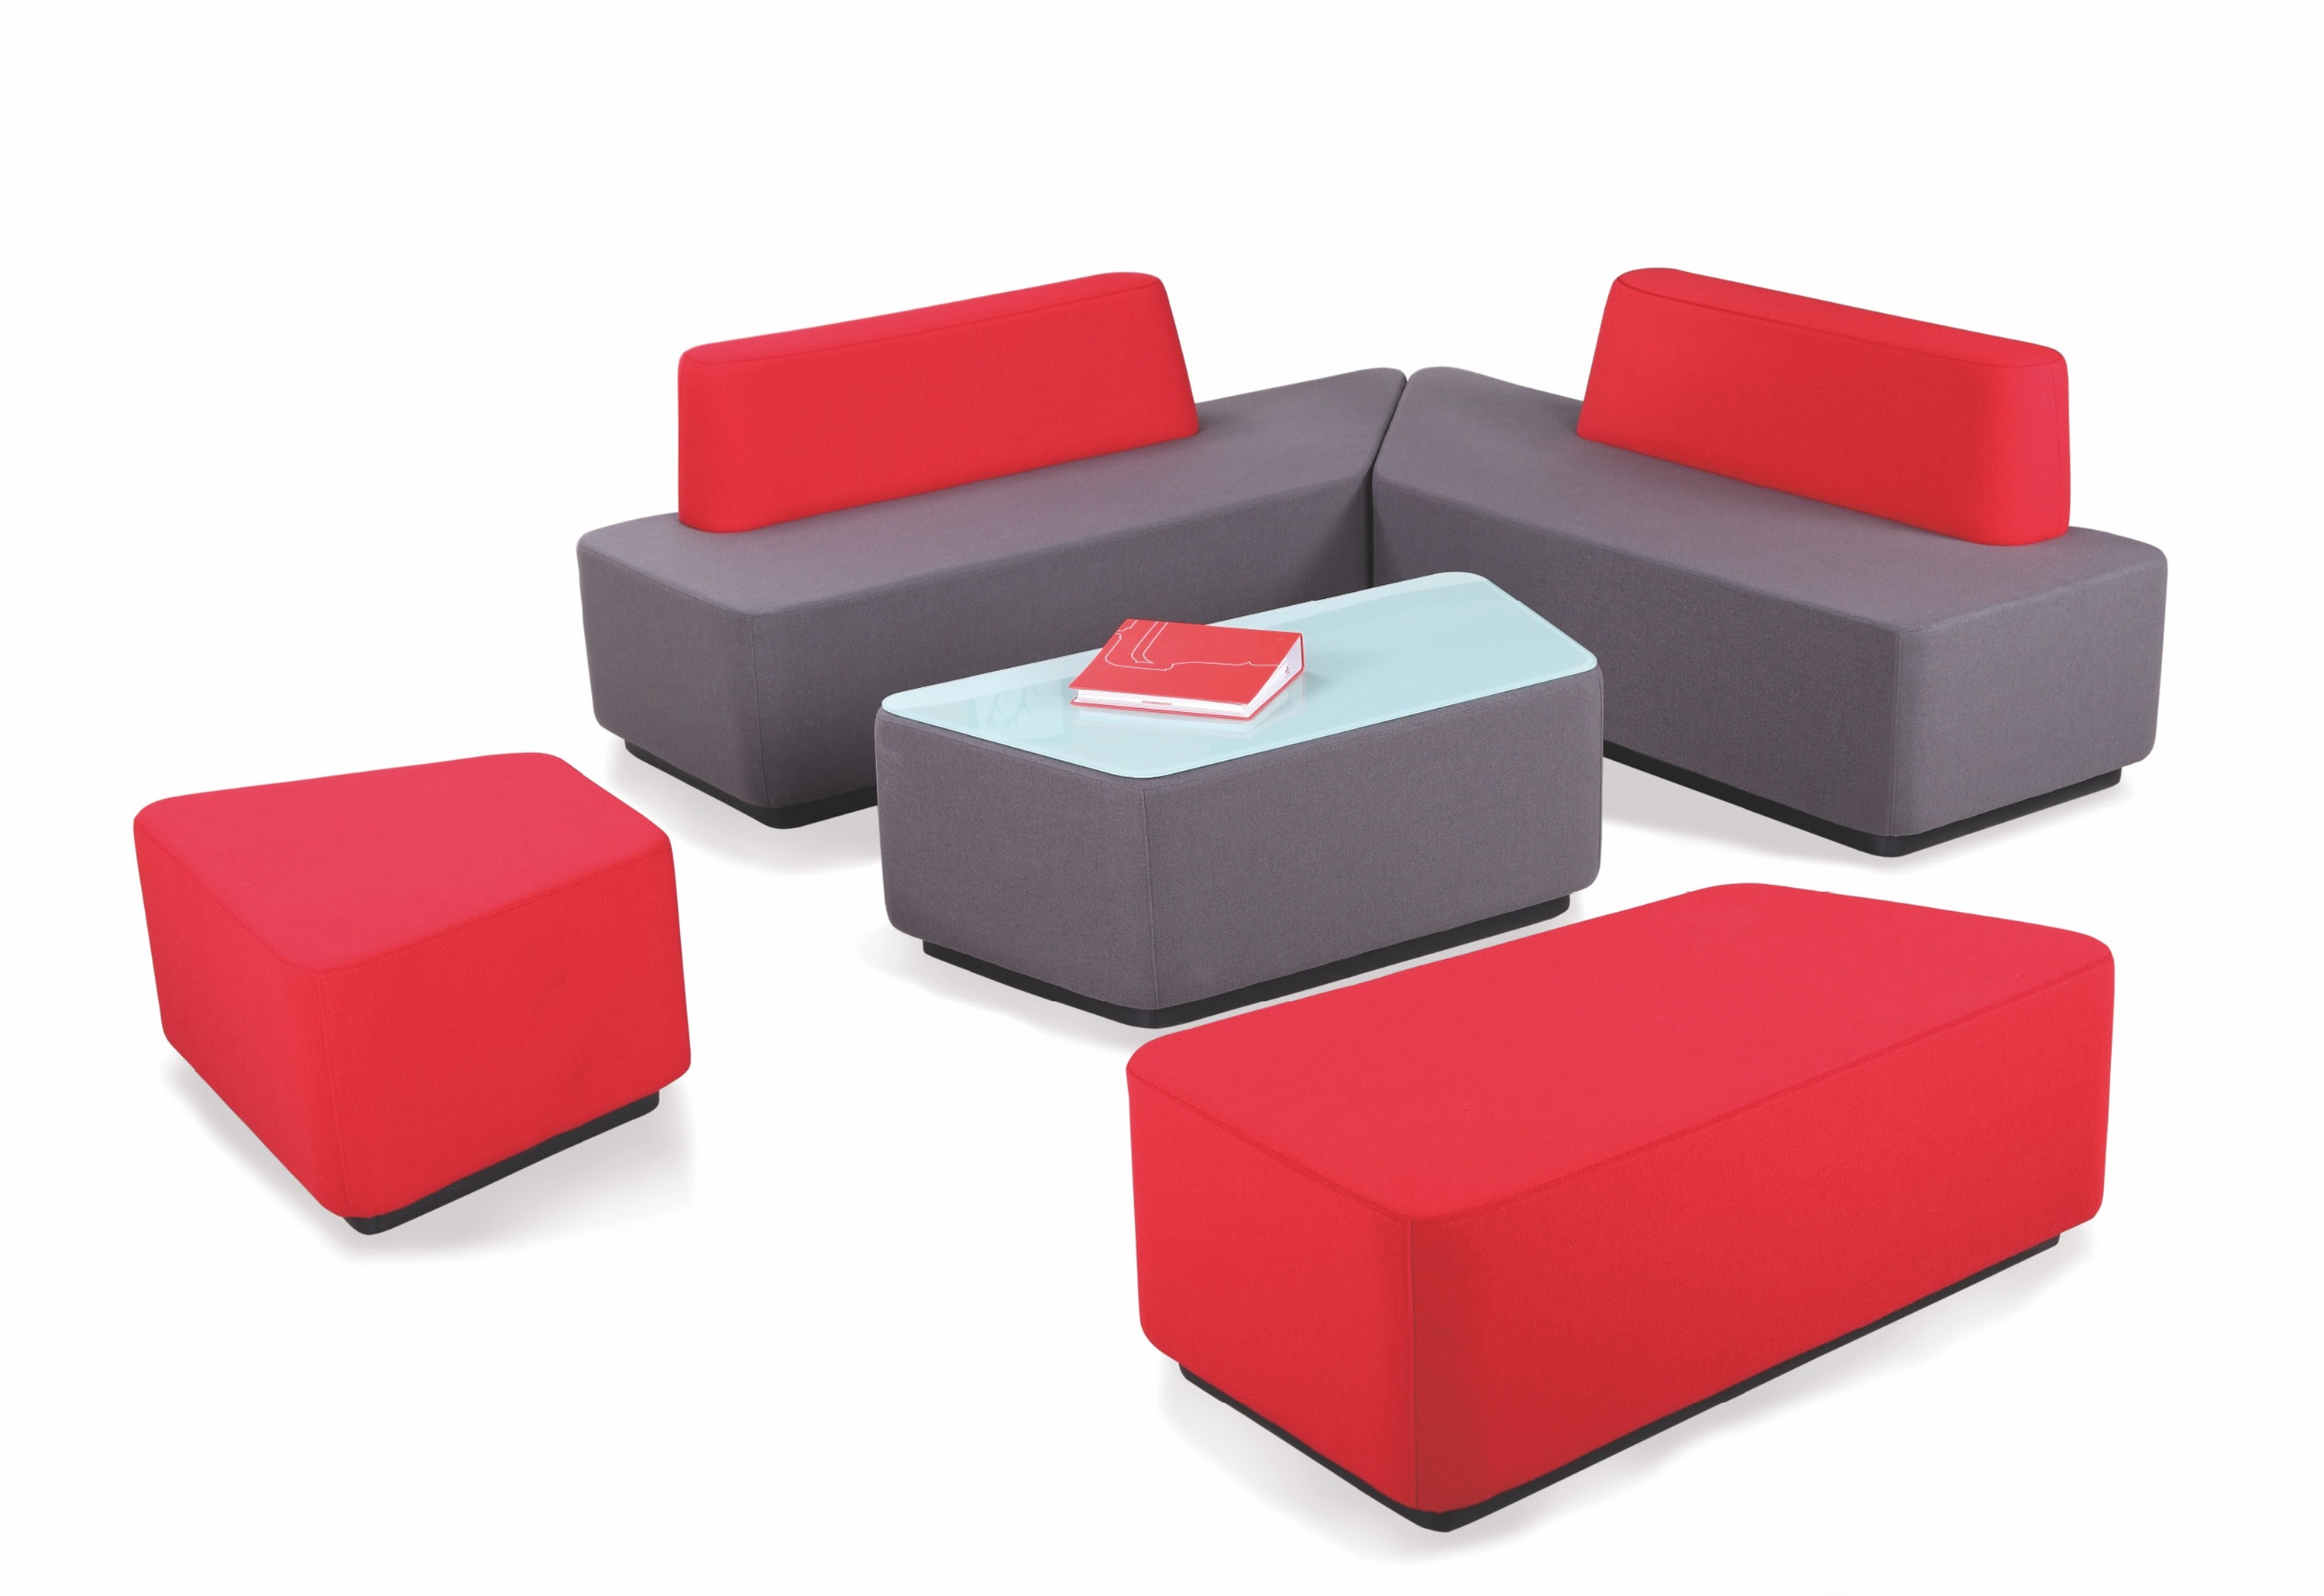 H 5160 modular round edge bench sofa (2)